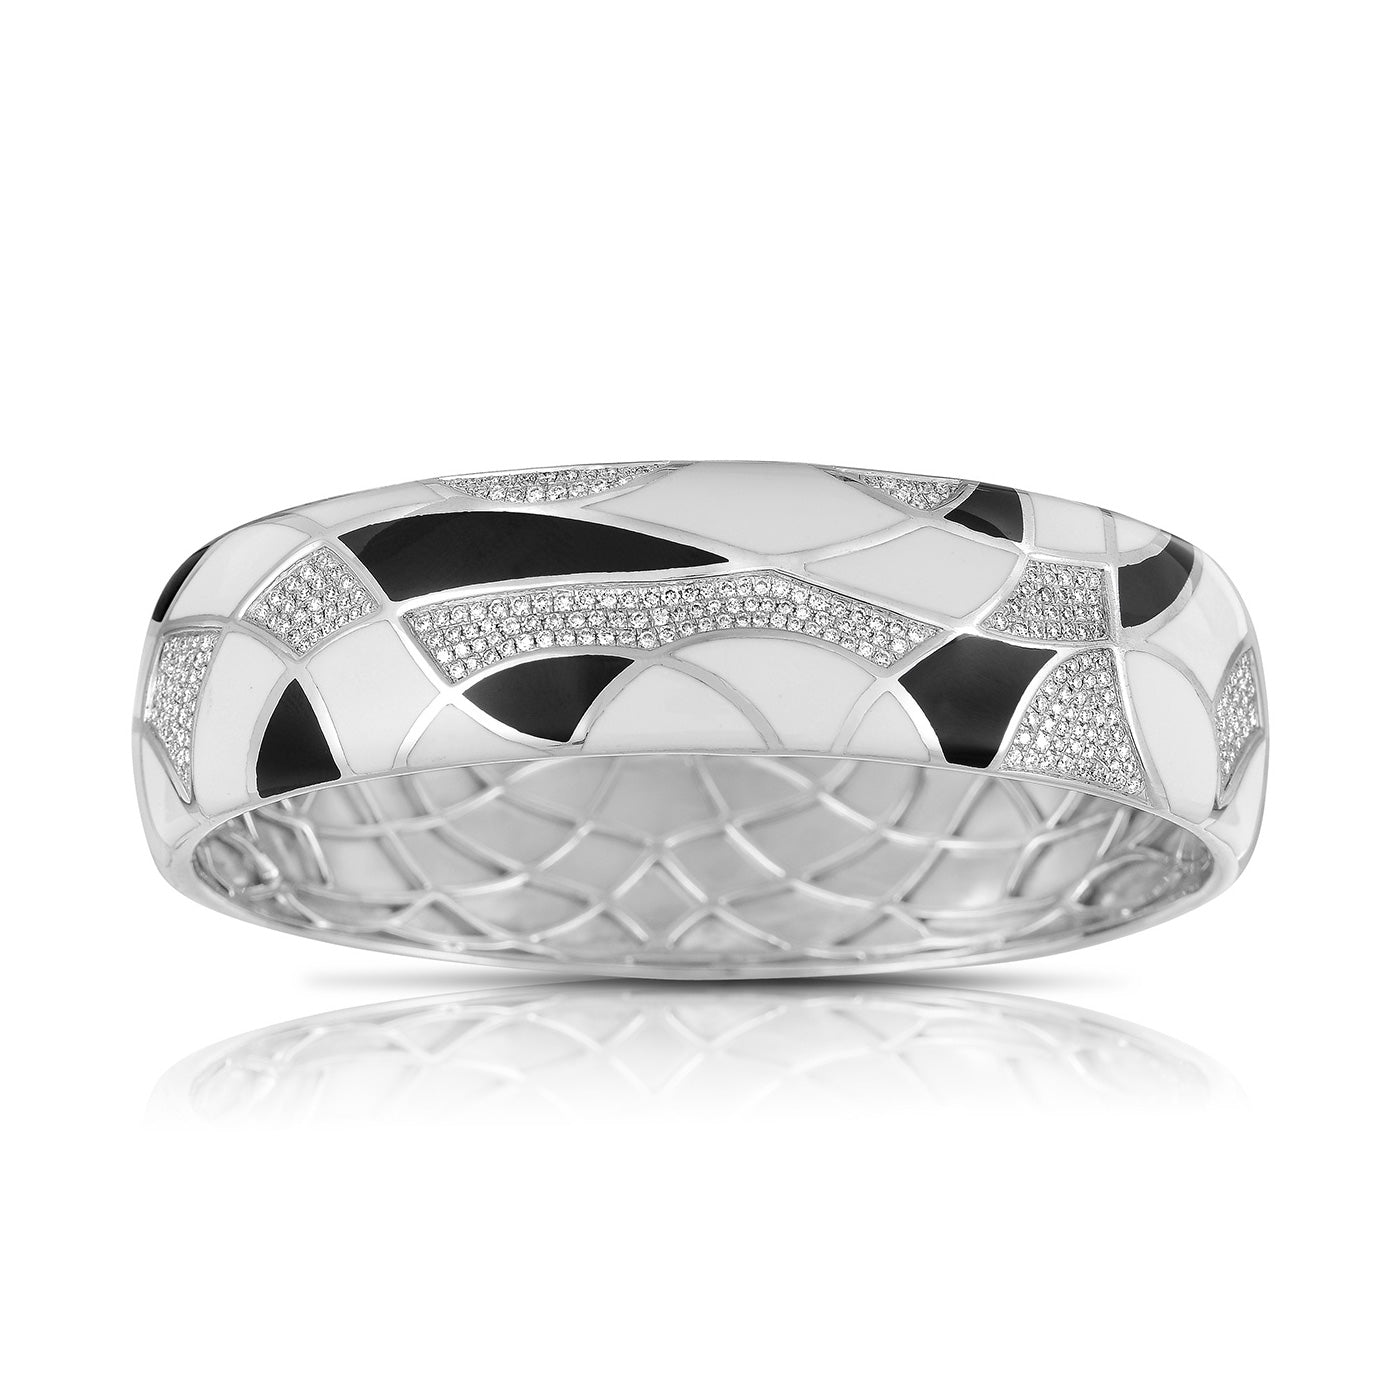 Wide Diamond And Enamel Bangle Bracelet, 14K White Gold